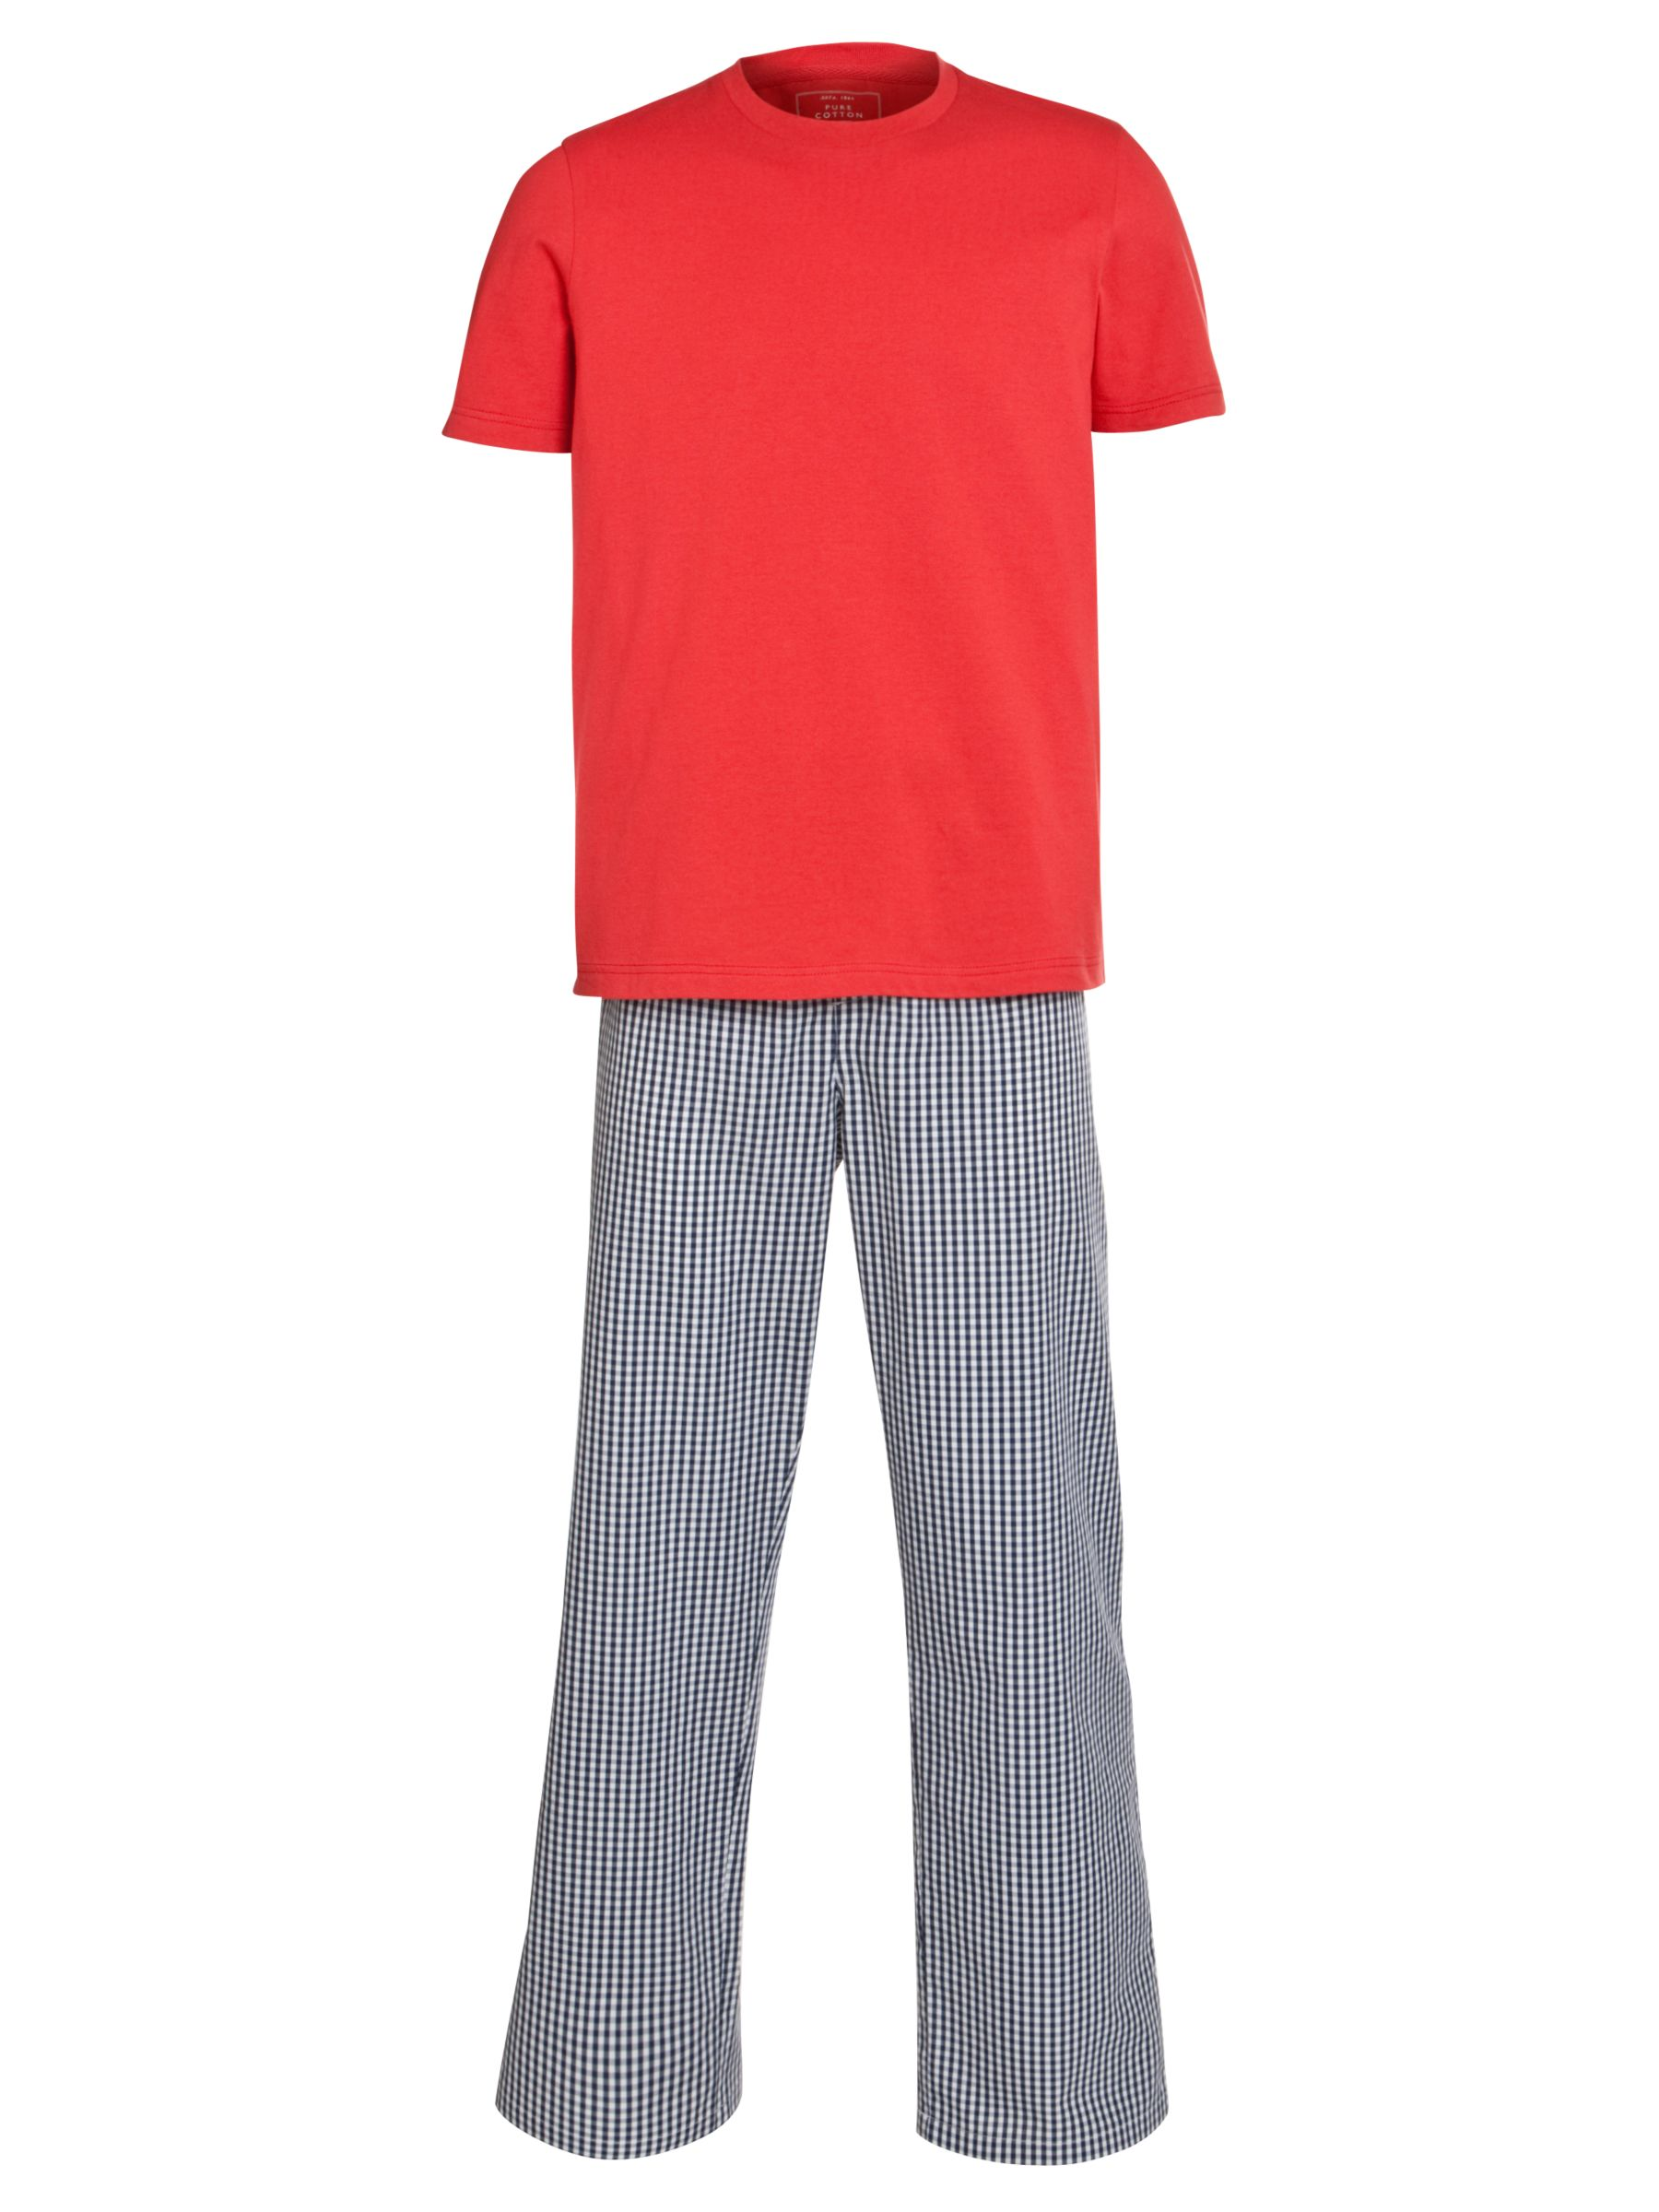 John Lewis Cotton T-Shirt and Gingham Trouser Lounge Set